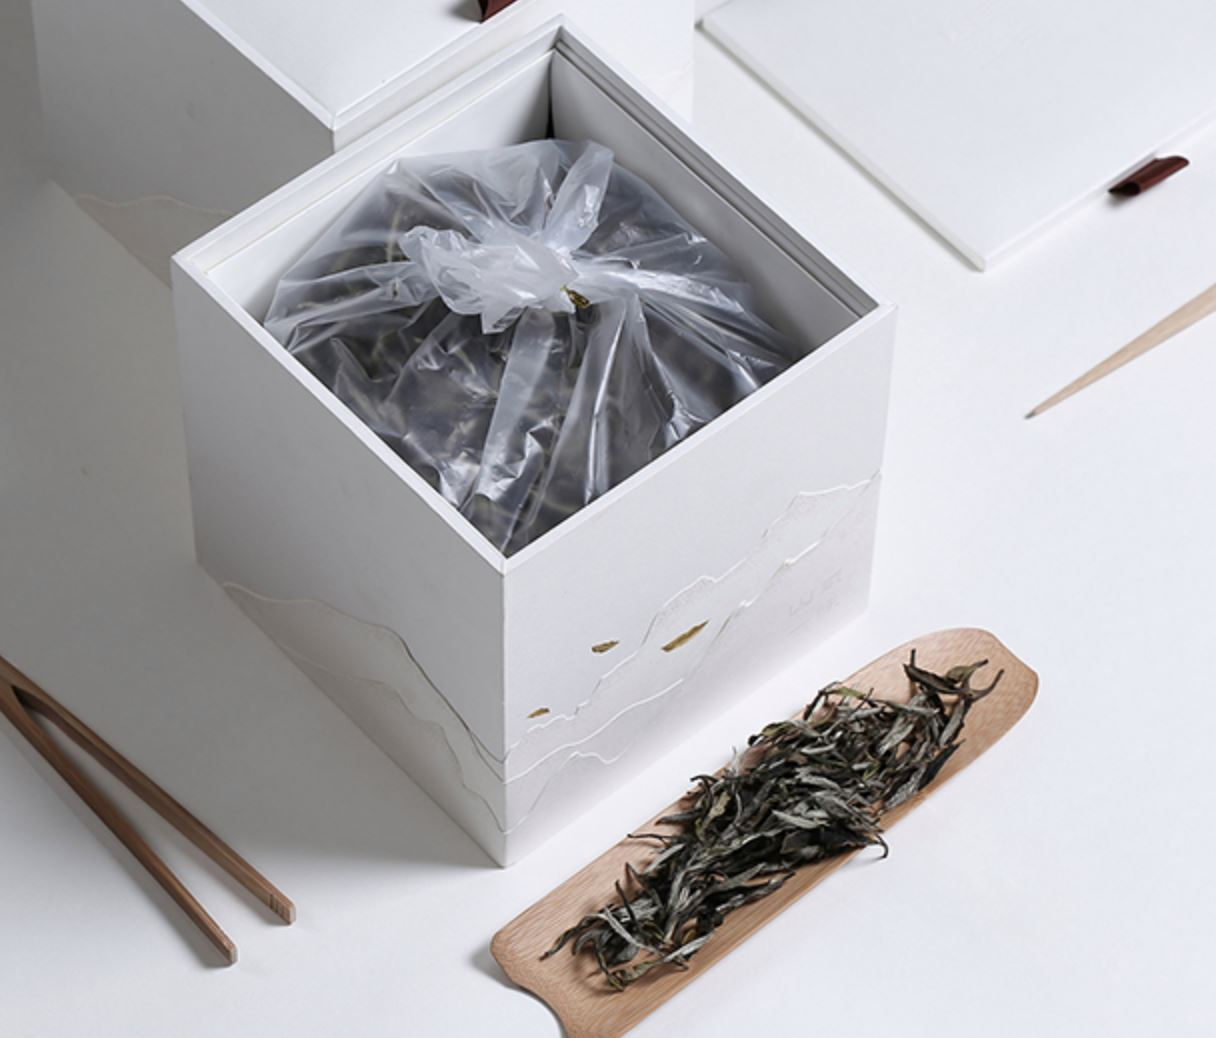 Tea Premium Grade Quality Box プレミアム